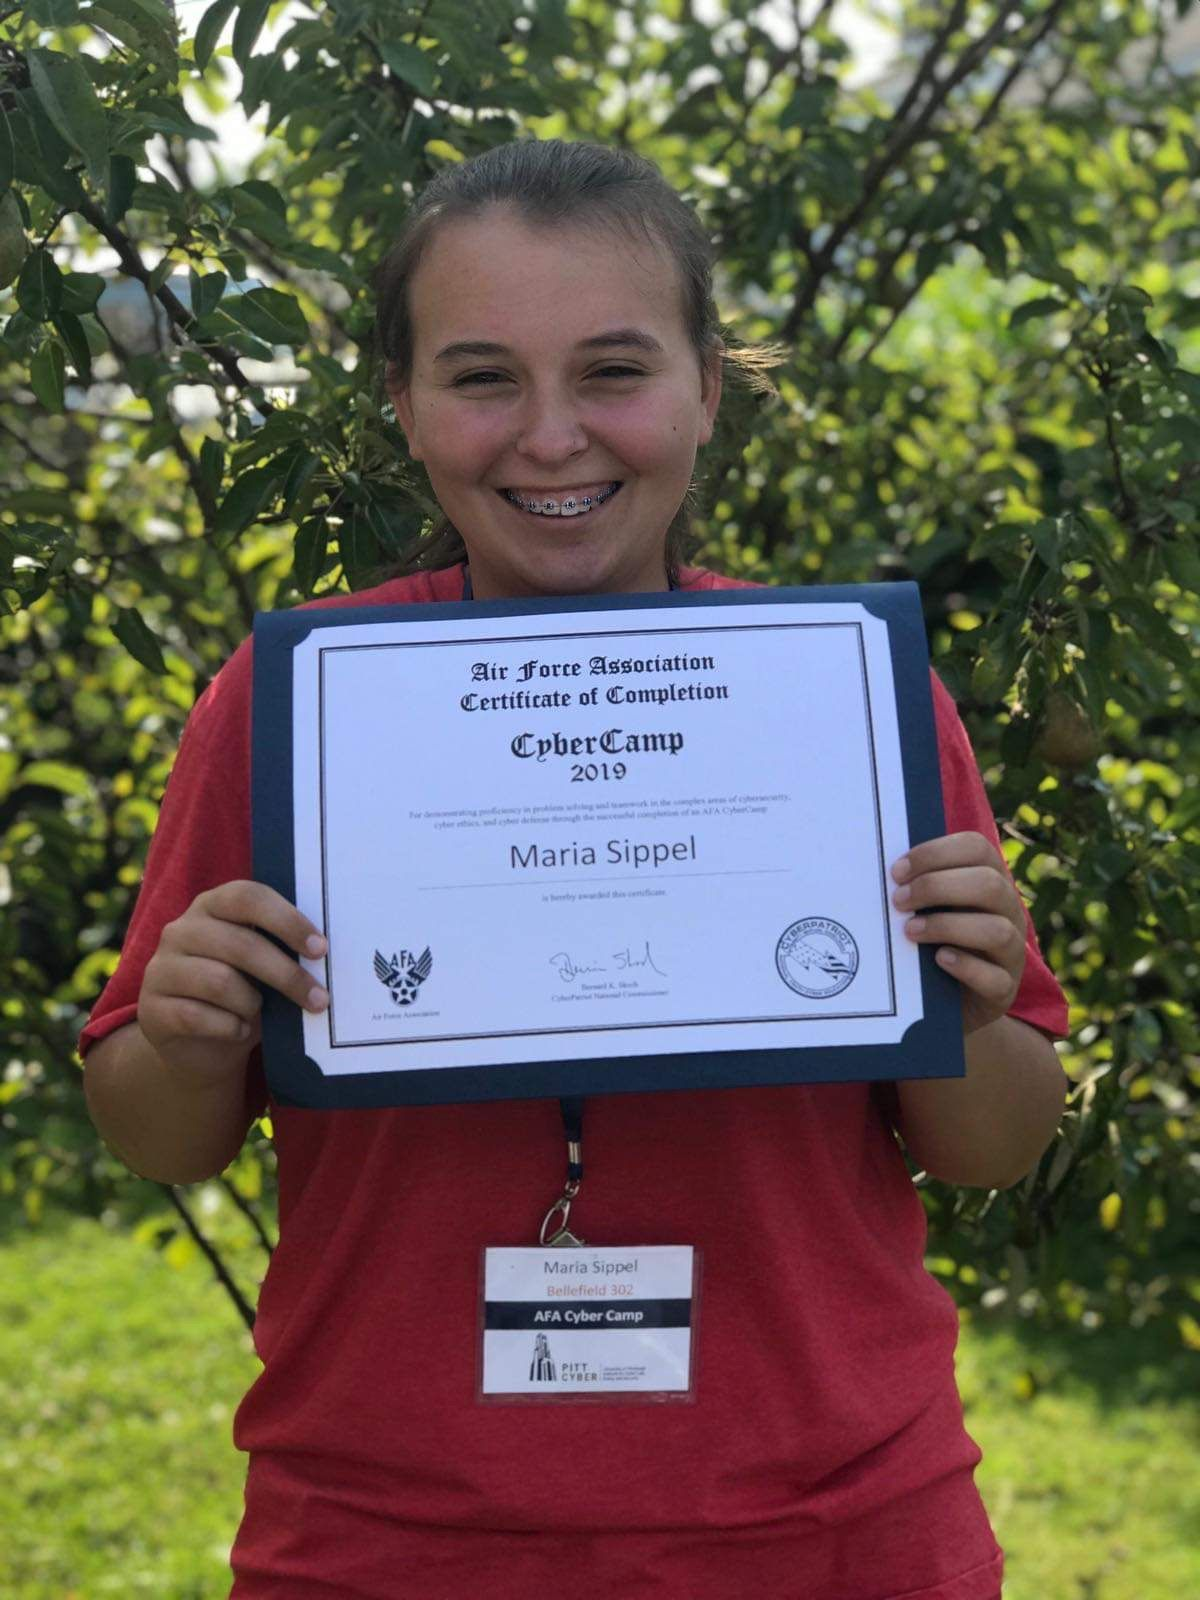 Cyber Camp Award for Maria Sippel, '22